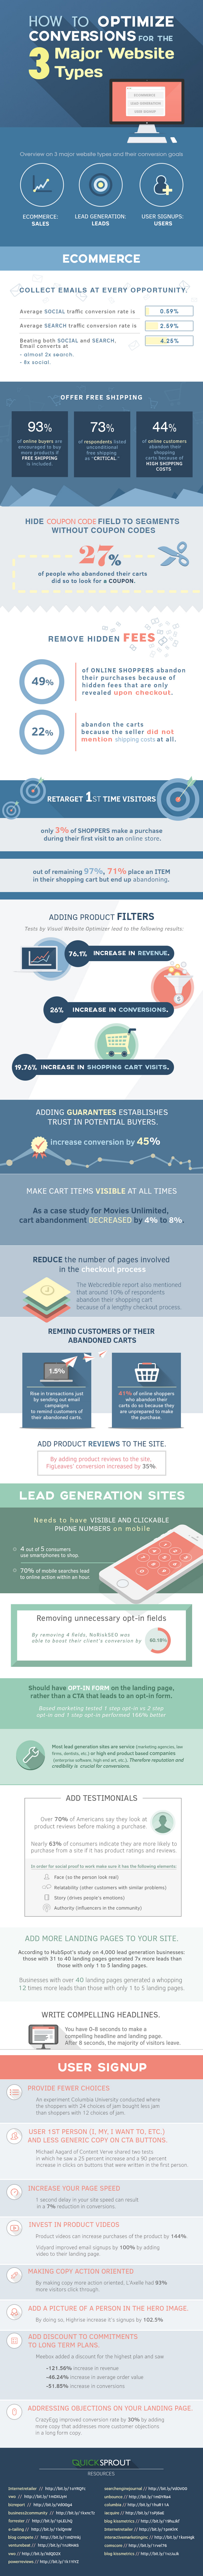 Ways-to-Optimize-an-Ecommerce-Site